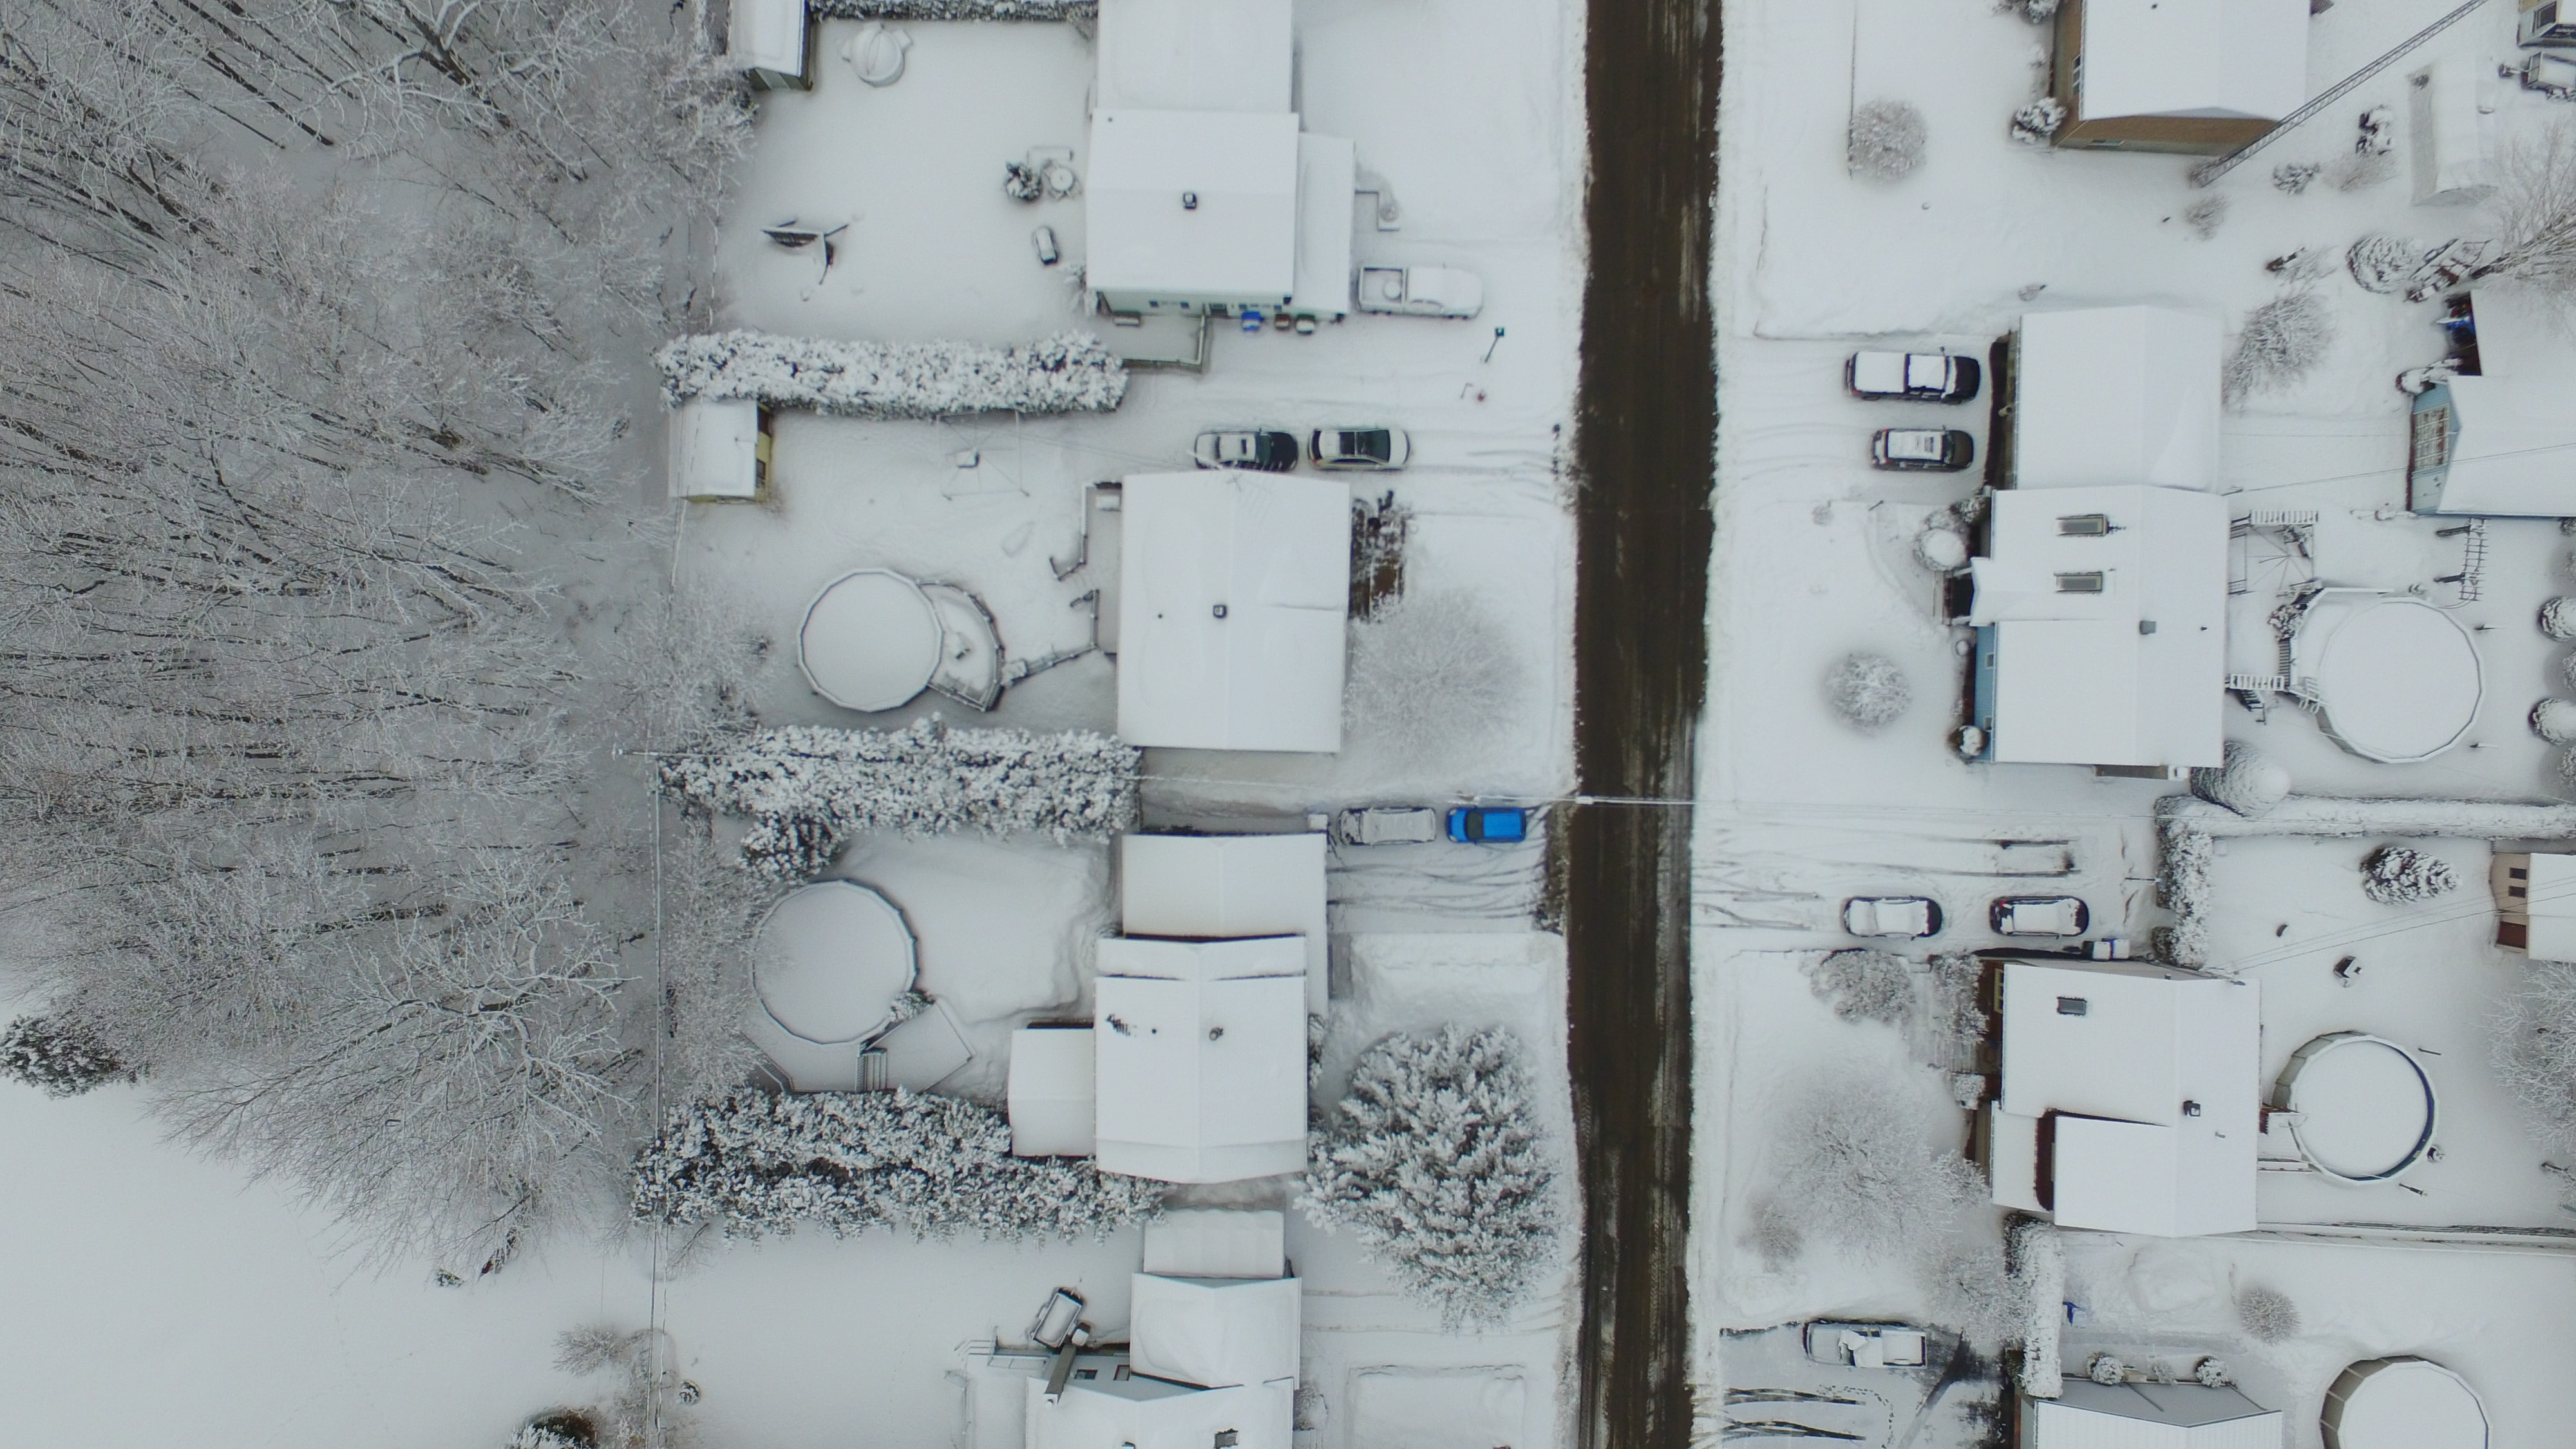 birds eye photography of snow covered residential area